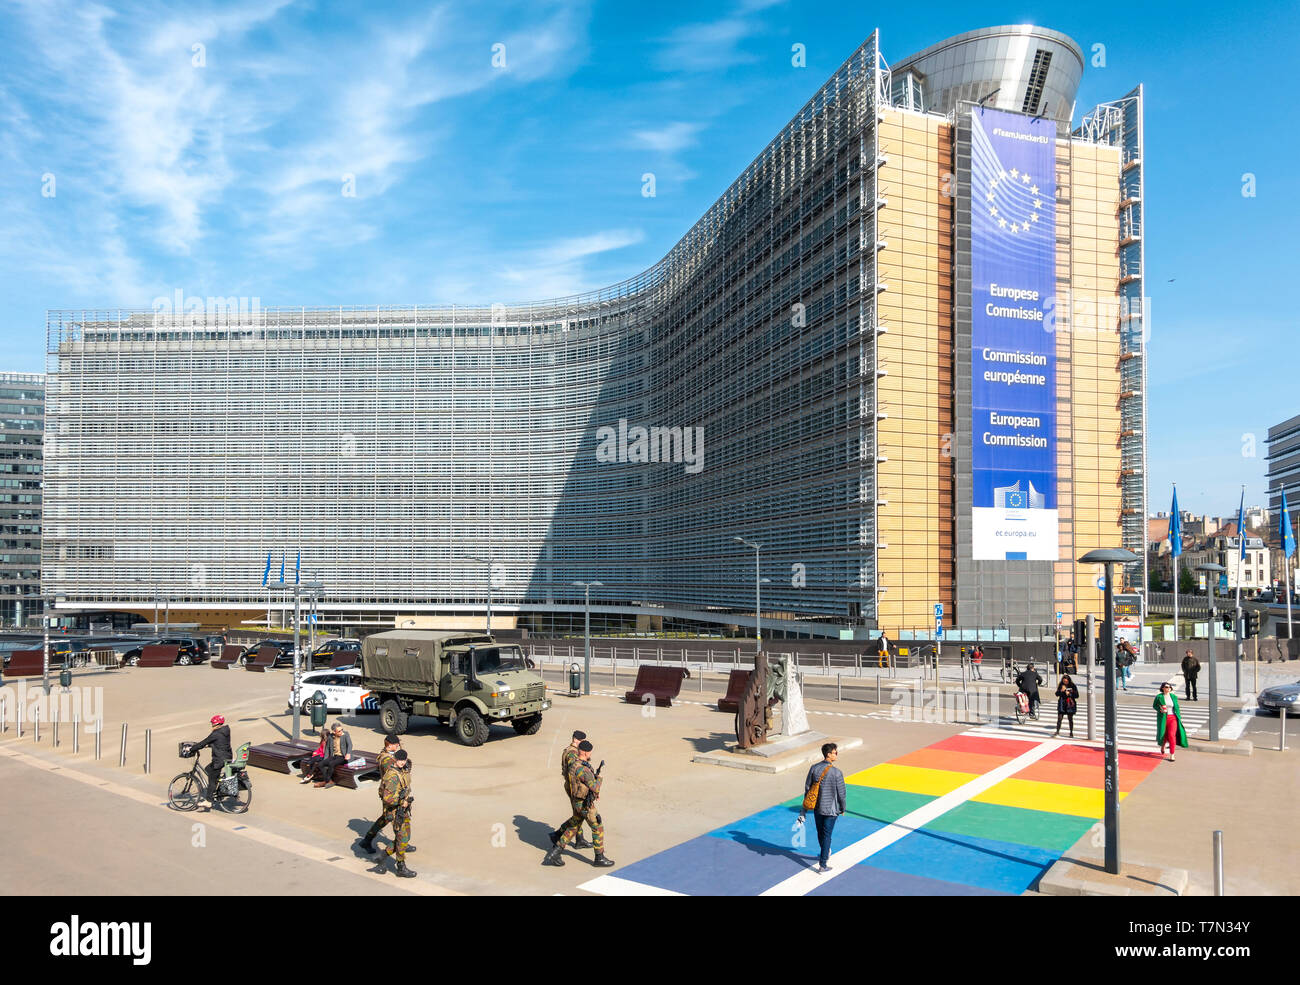 https://c7.alamy.com/comp/T7N34Y/brussels-berlaymont-building-headquarters-of-the-european-commission-ec-the-executive-of-the-european-union-eu-brussel-bruxelles-belgium-europe-T7N34Y.jpg